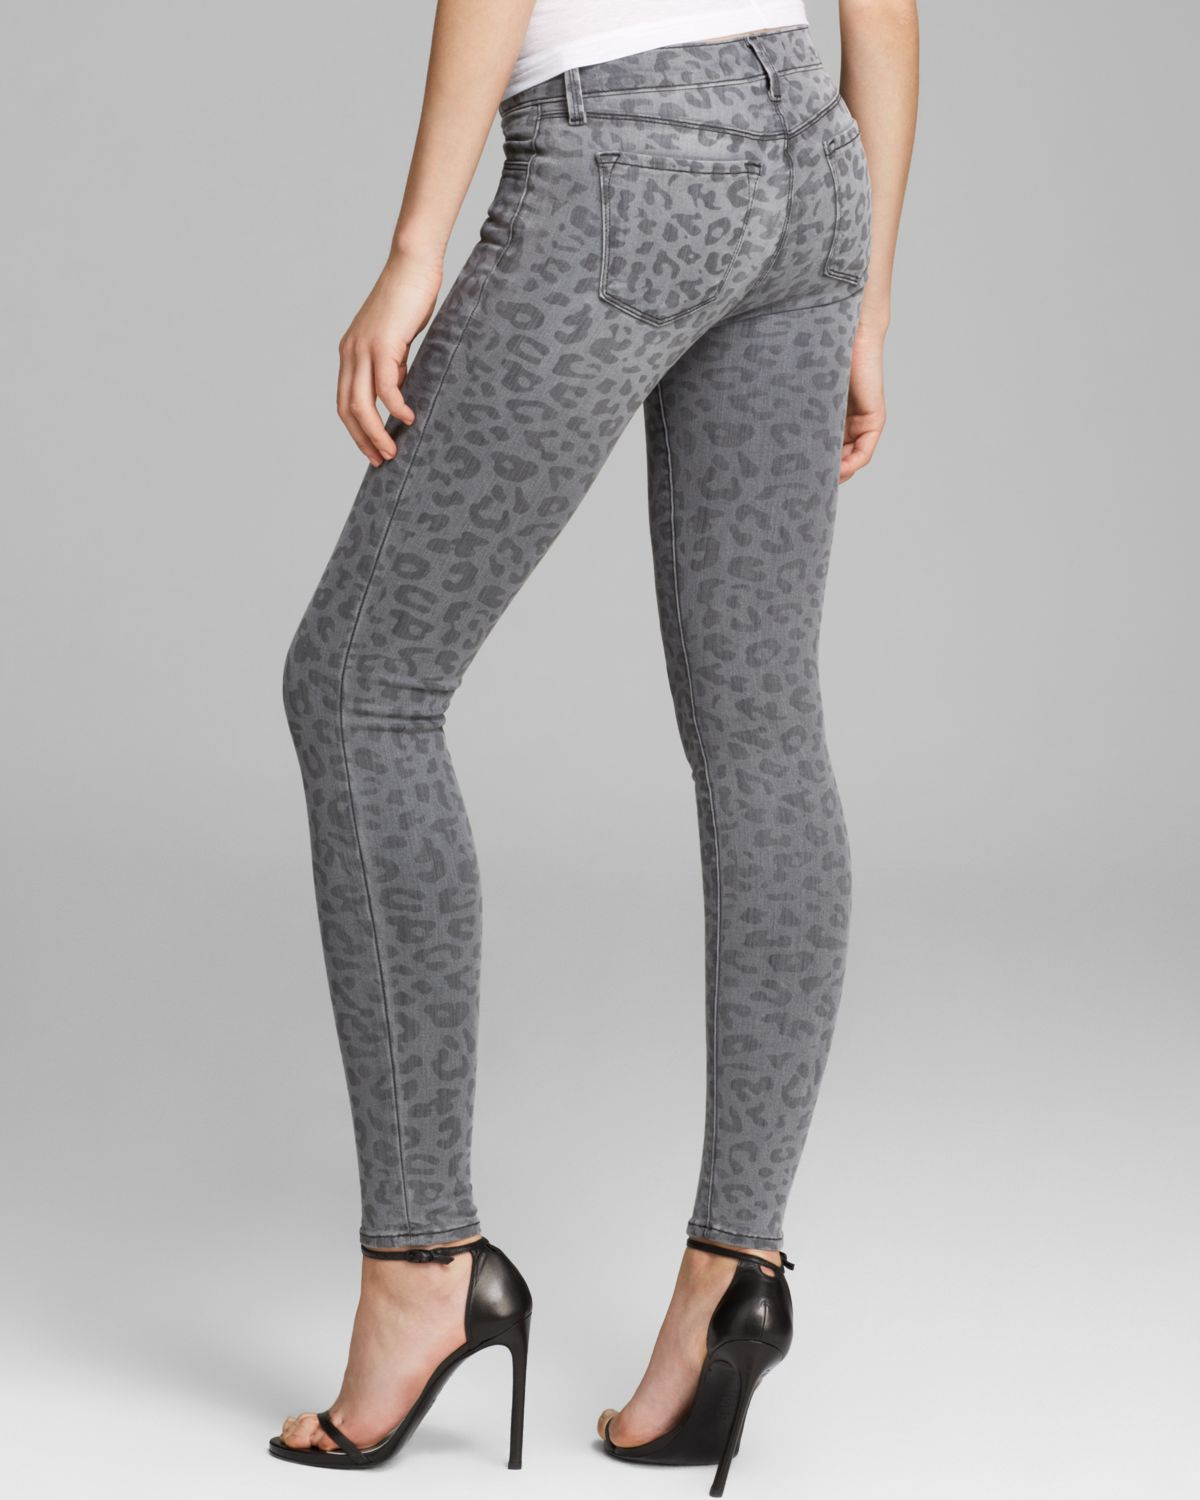 J brand Jeans Leopard Printed Skinny in Onyx in Gray | Lyst